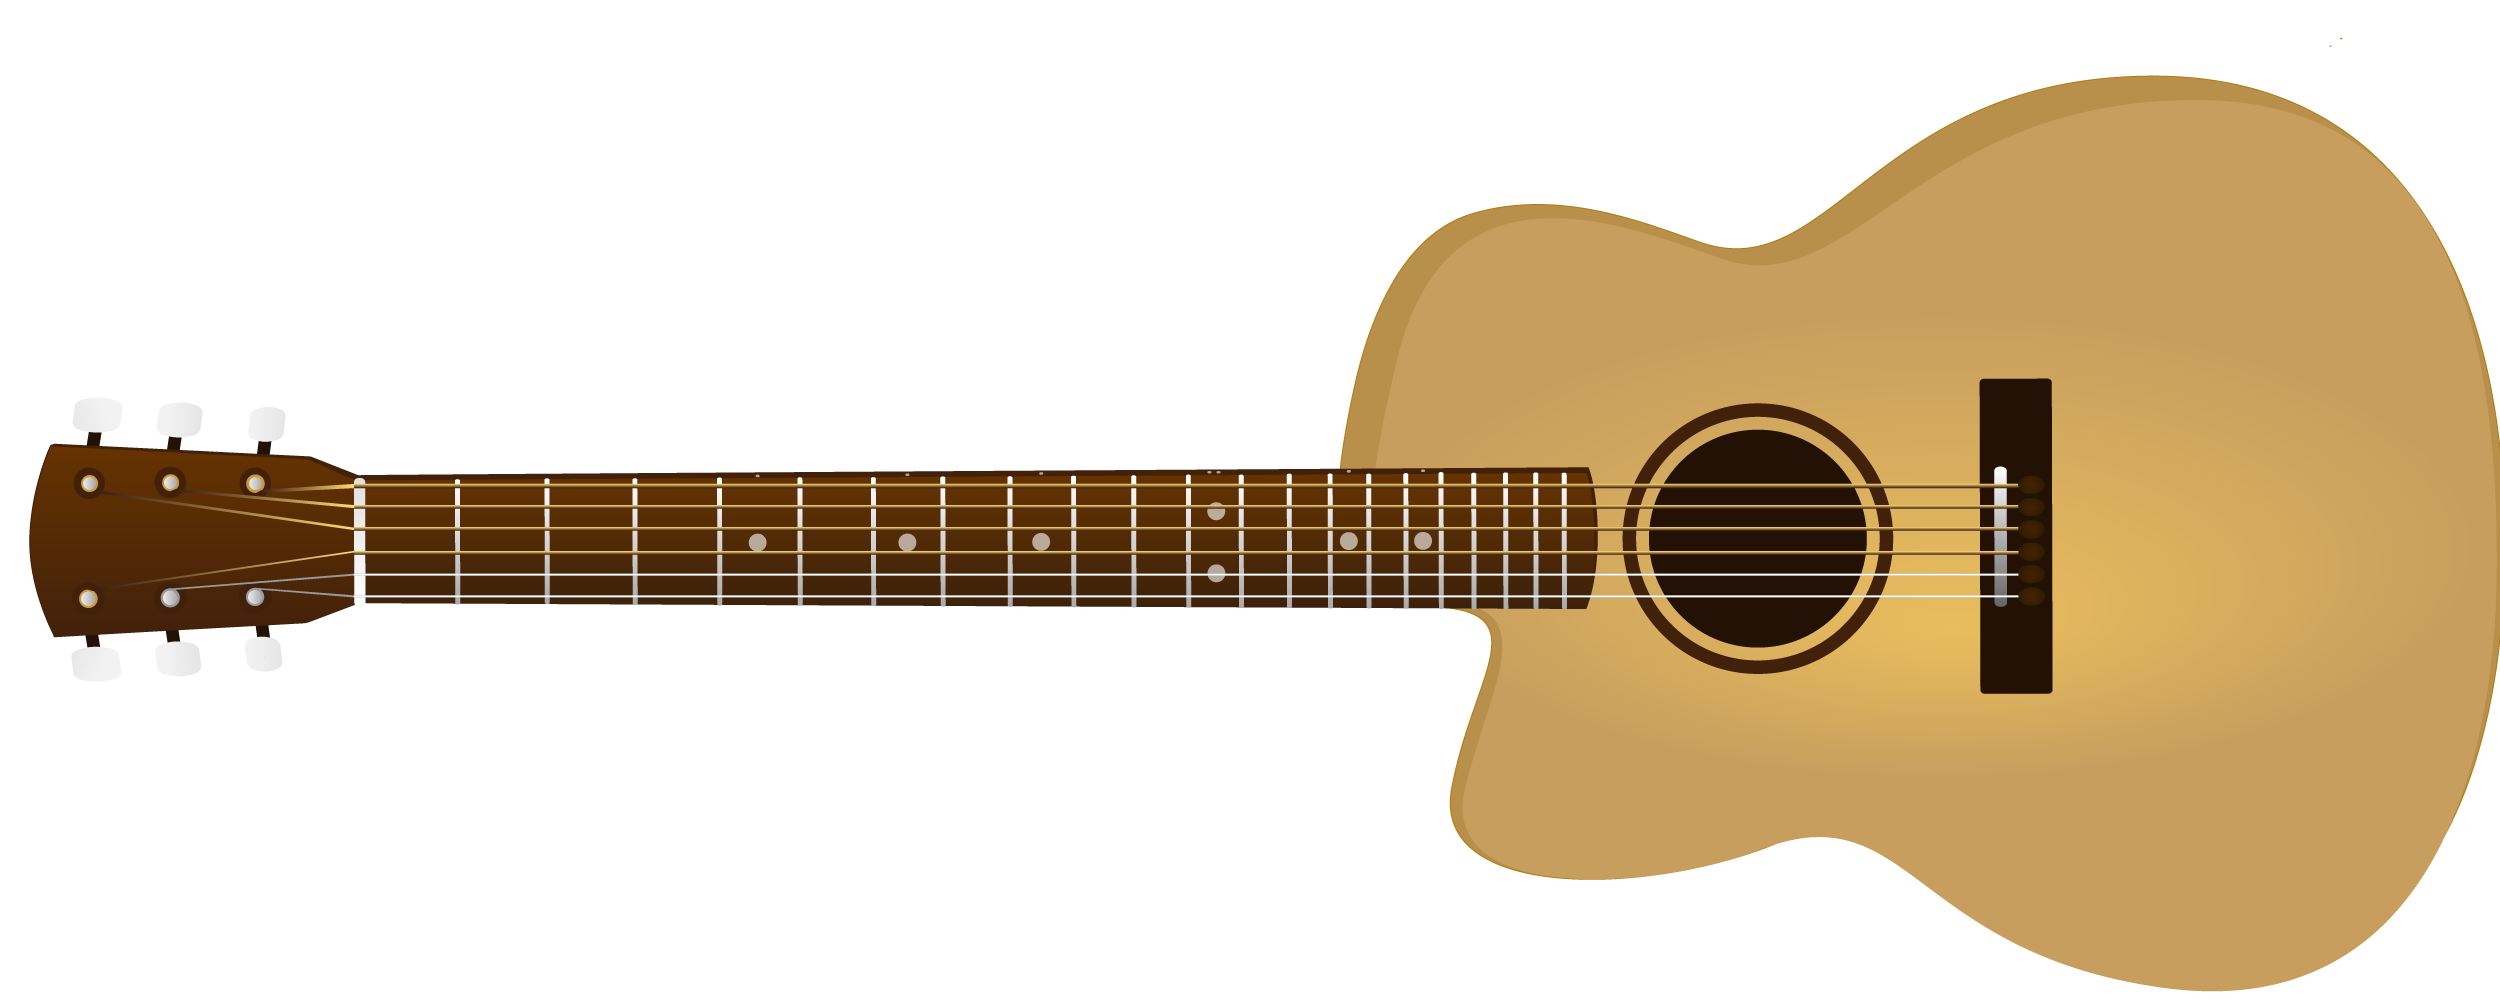 Clipart guitar guitar spain.  collection of acoustic